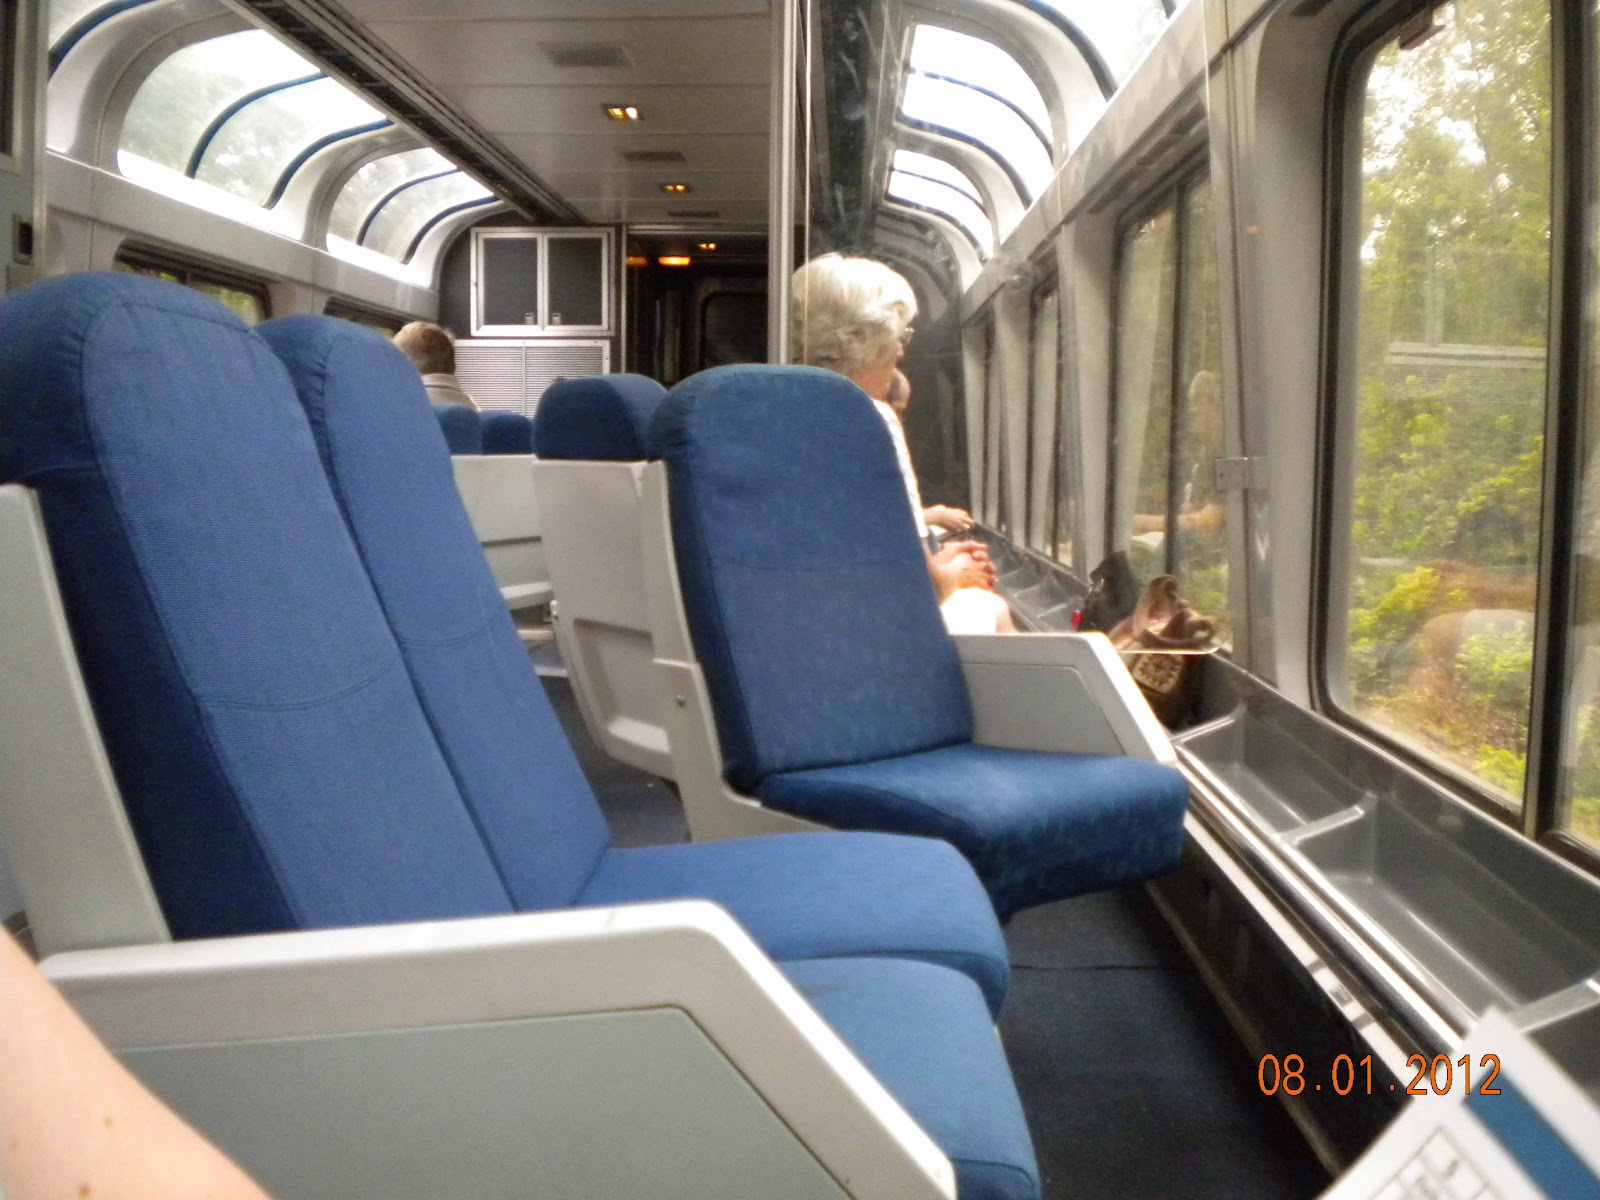 Jex Reviews California Zephyr Amtrack Superliner